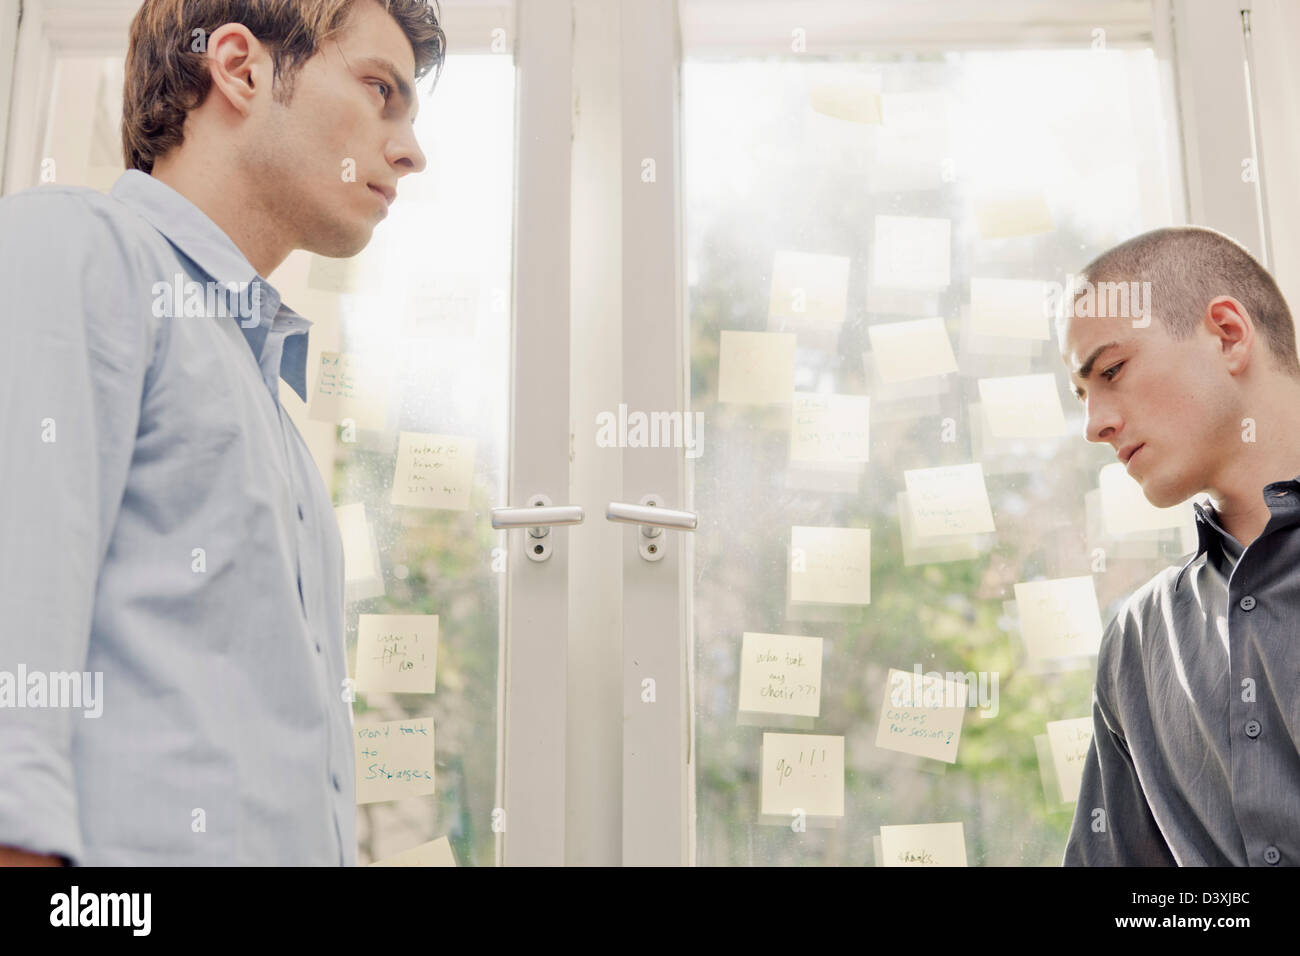 two office workers in discord, not seeing eye-to-eye - Stock Image